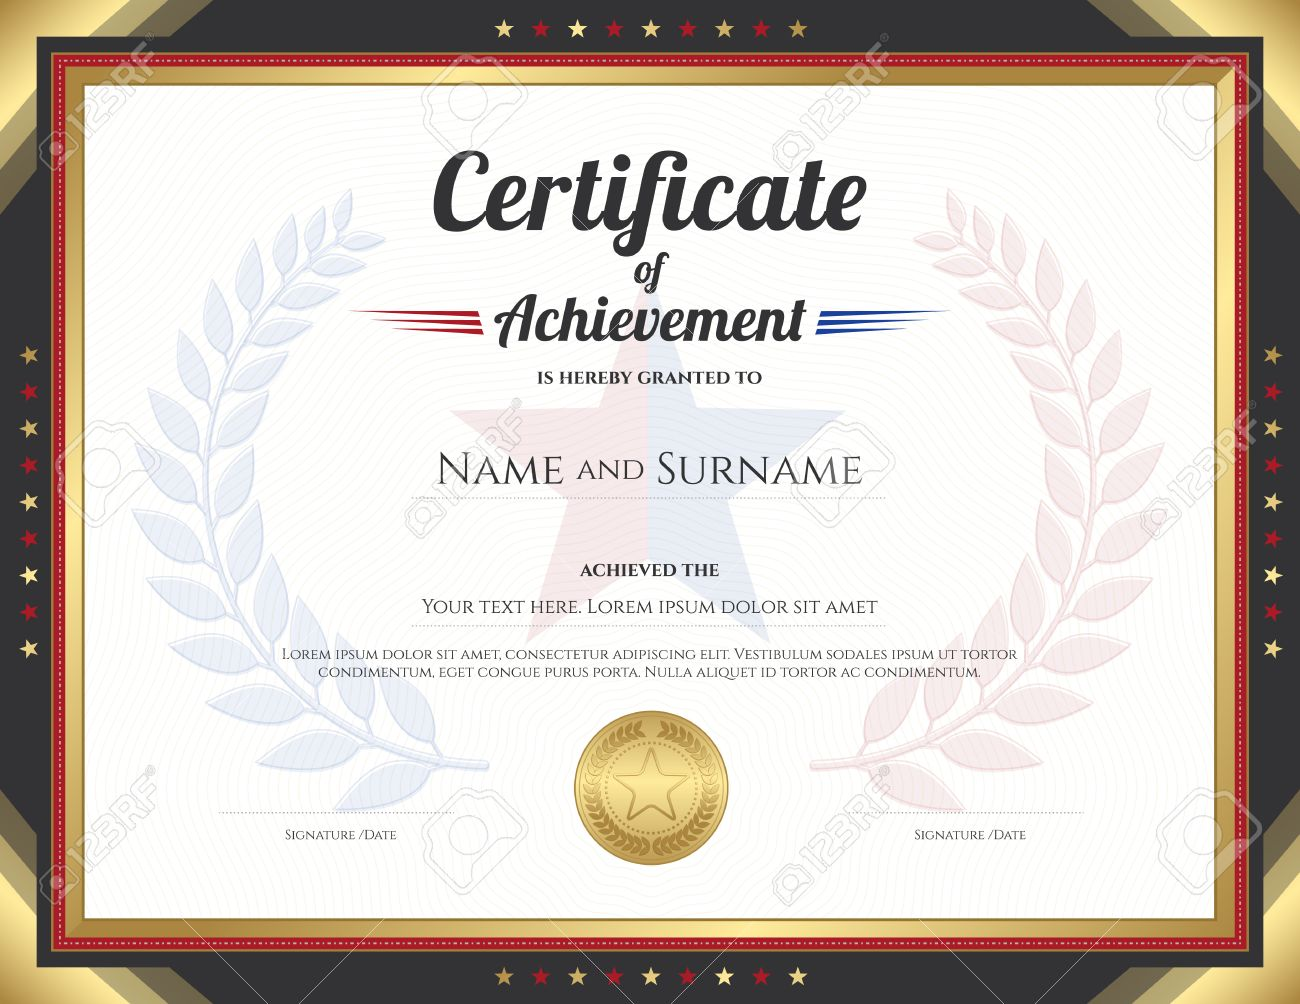 Certificate Of Achievement Template With Gold Border Theme And